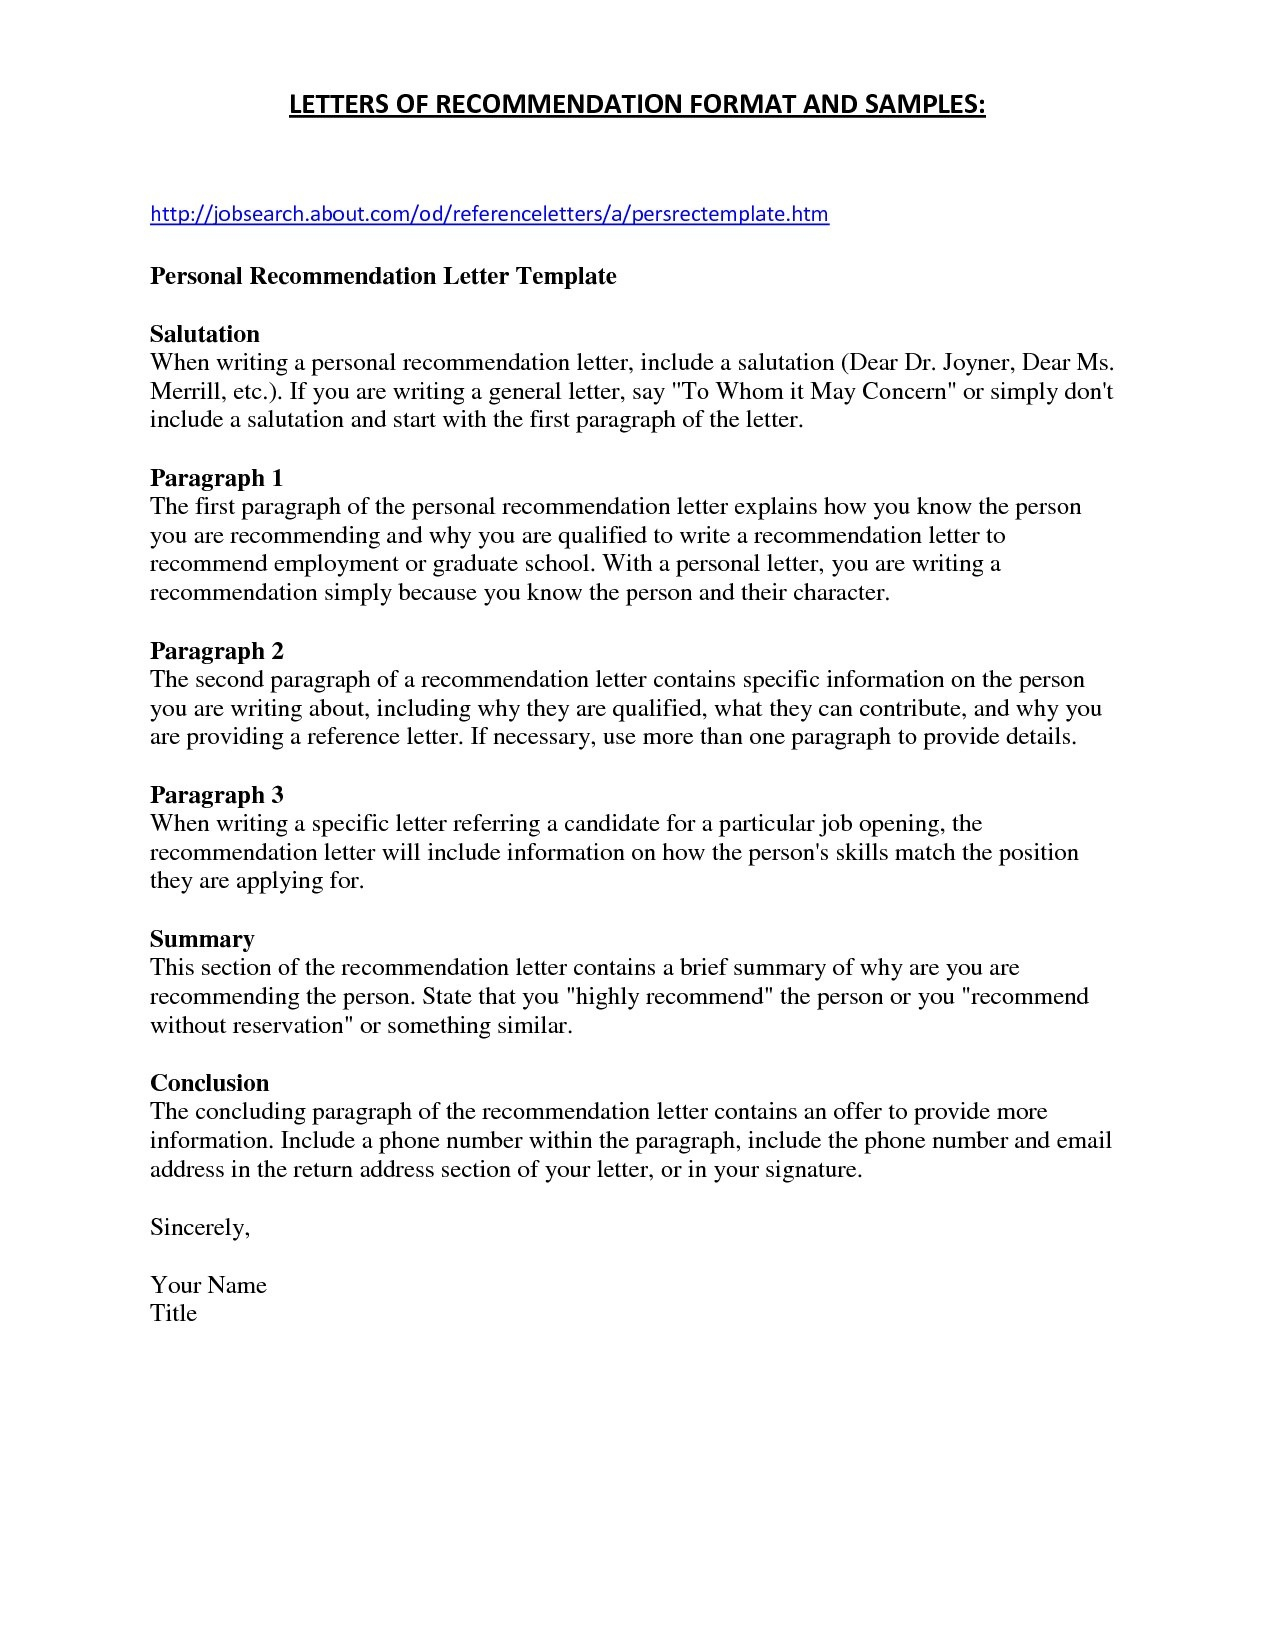 Resume for Police Officer - Police Ficer Resume Examples New Police Ficer Resume Resume Samples